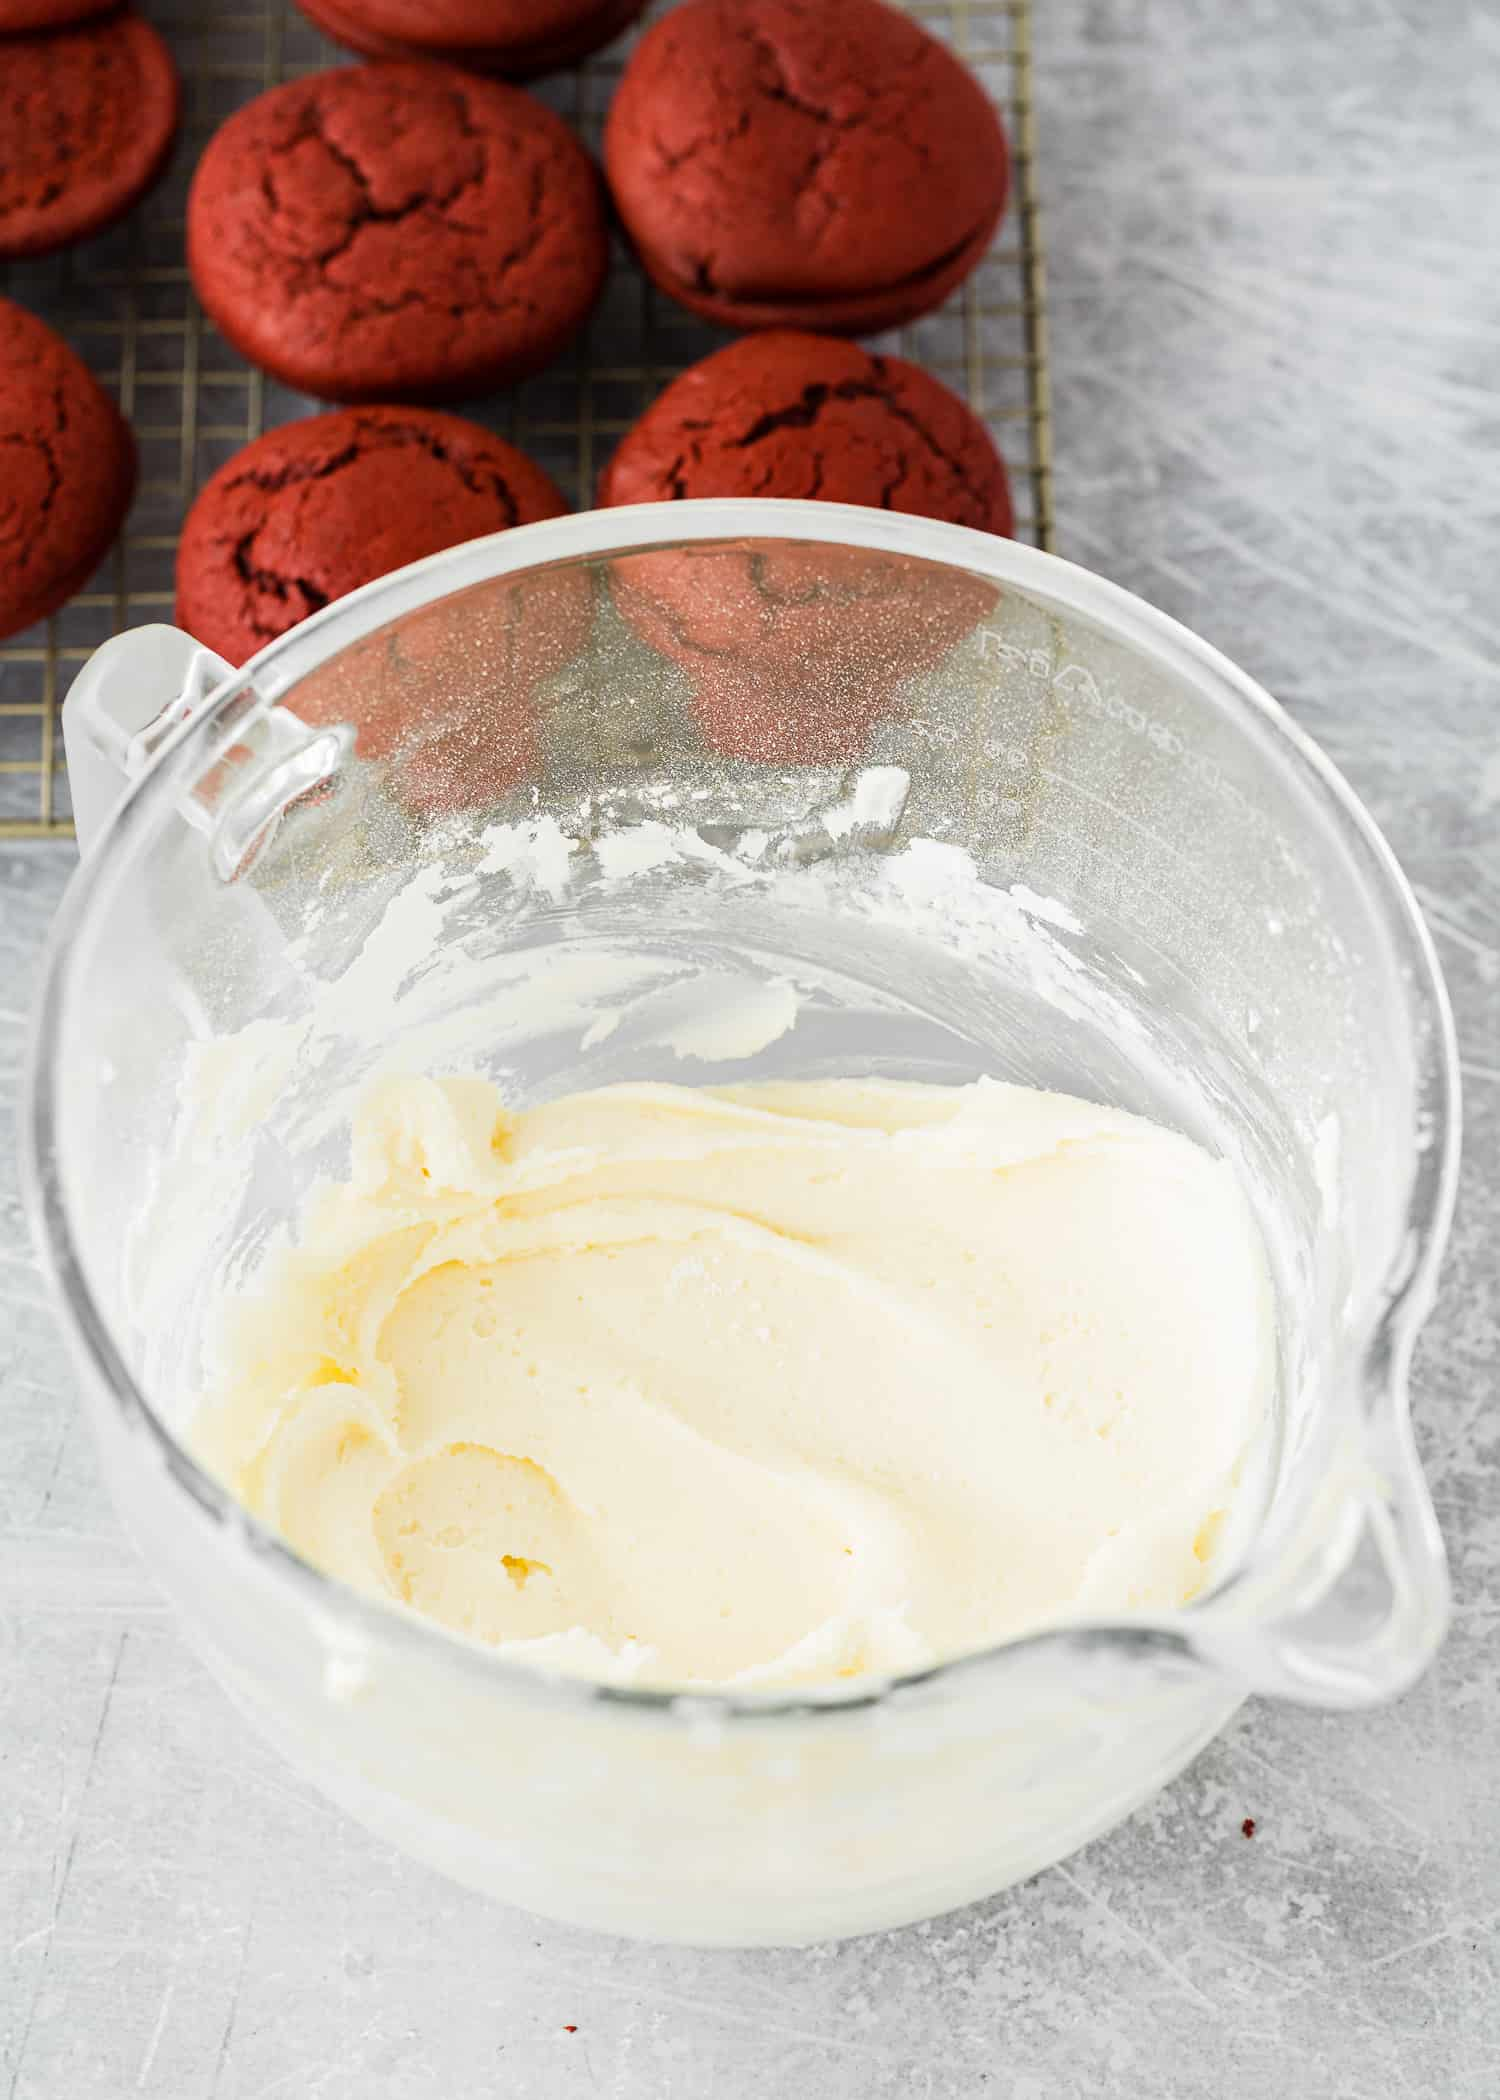 Cream cheese frosting for whoopie pies